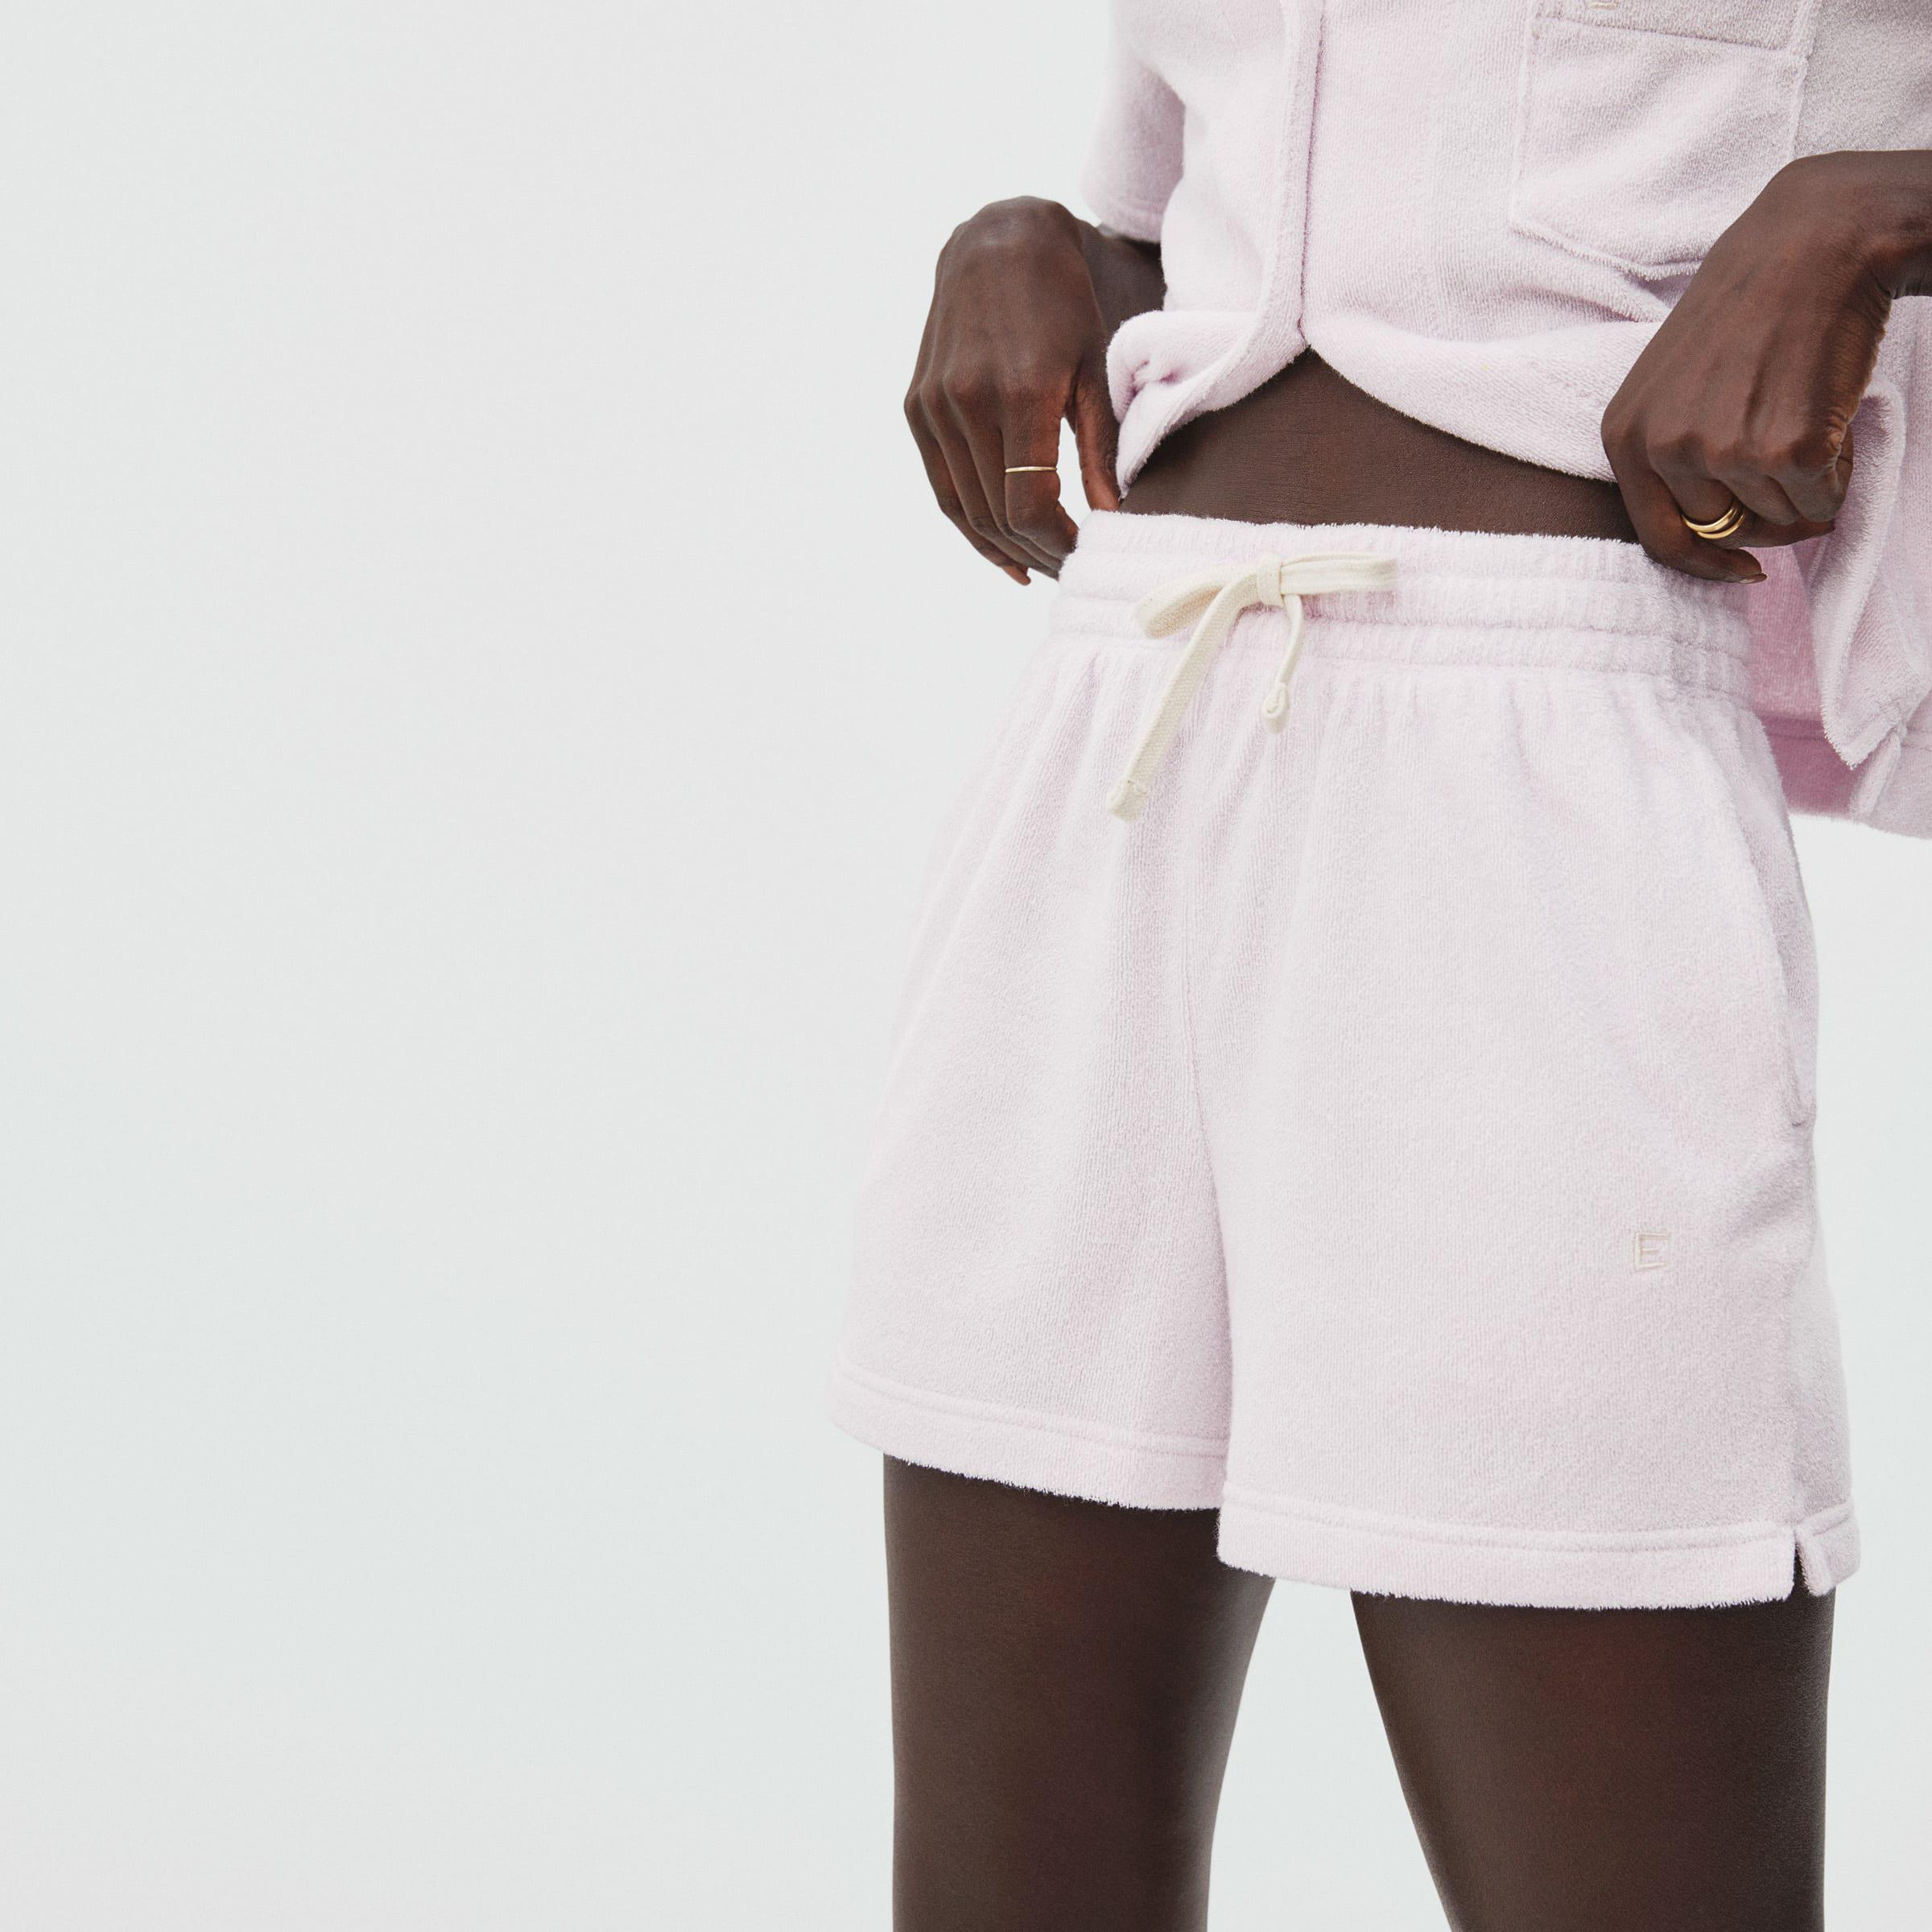 The Terry Cloth Short